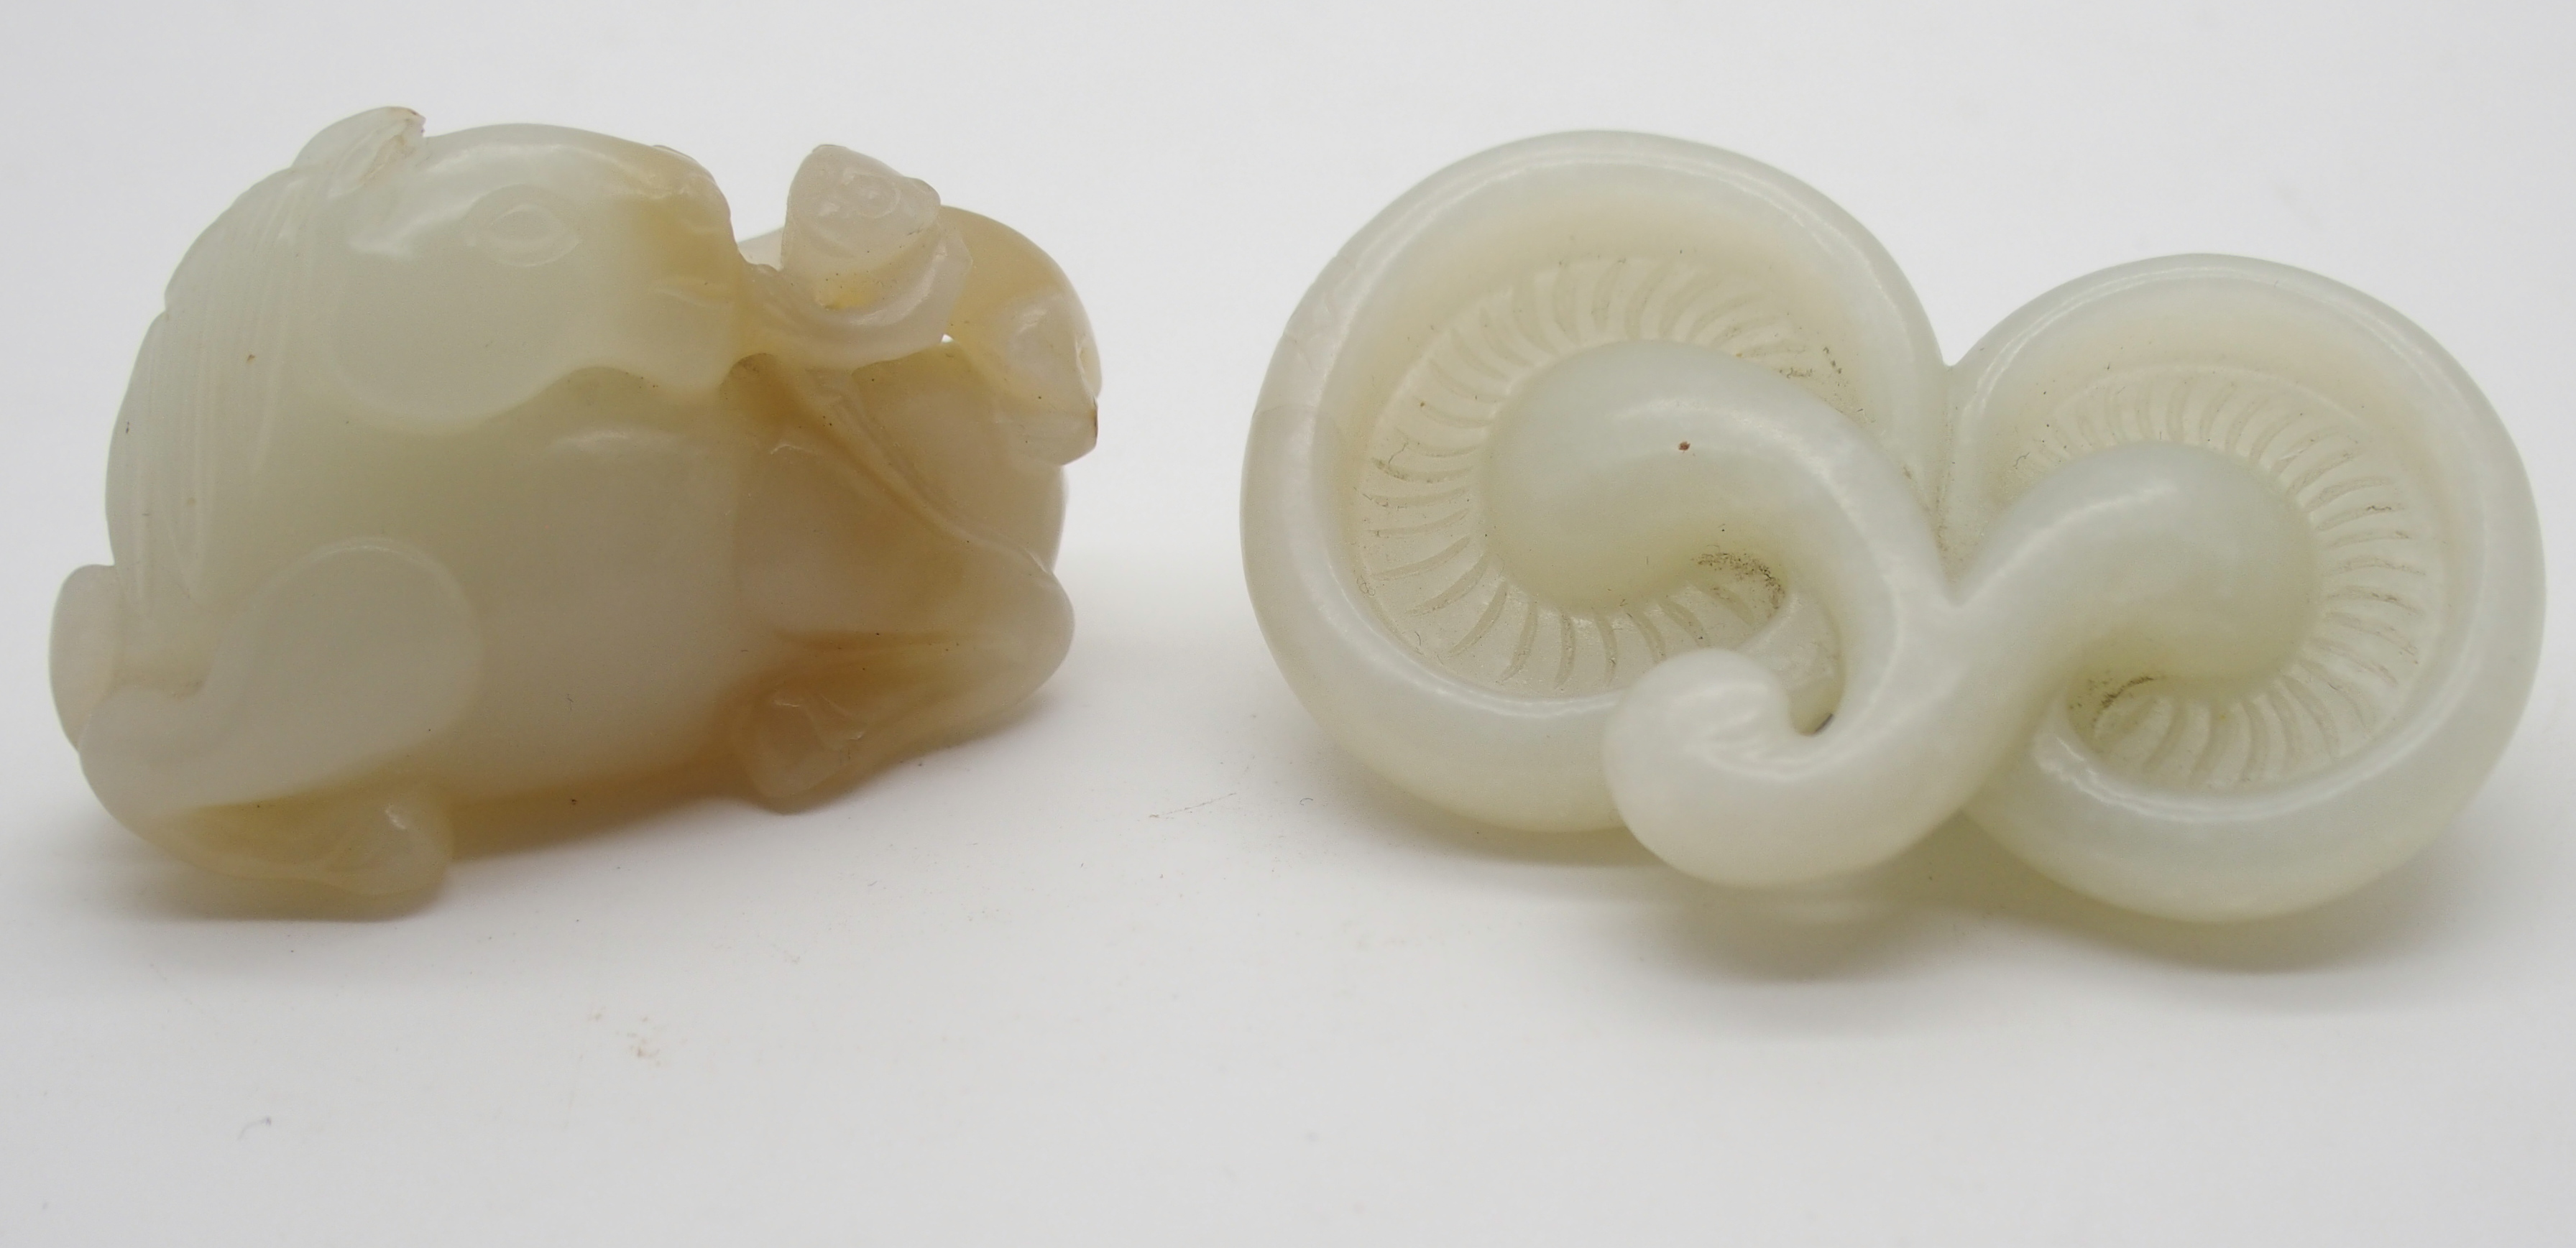 Lot 23 - A CHINESE JADE ANIMAL CARVING with a recumbent horse and monkey climbing on its back, 5cm wide and